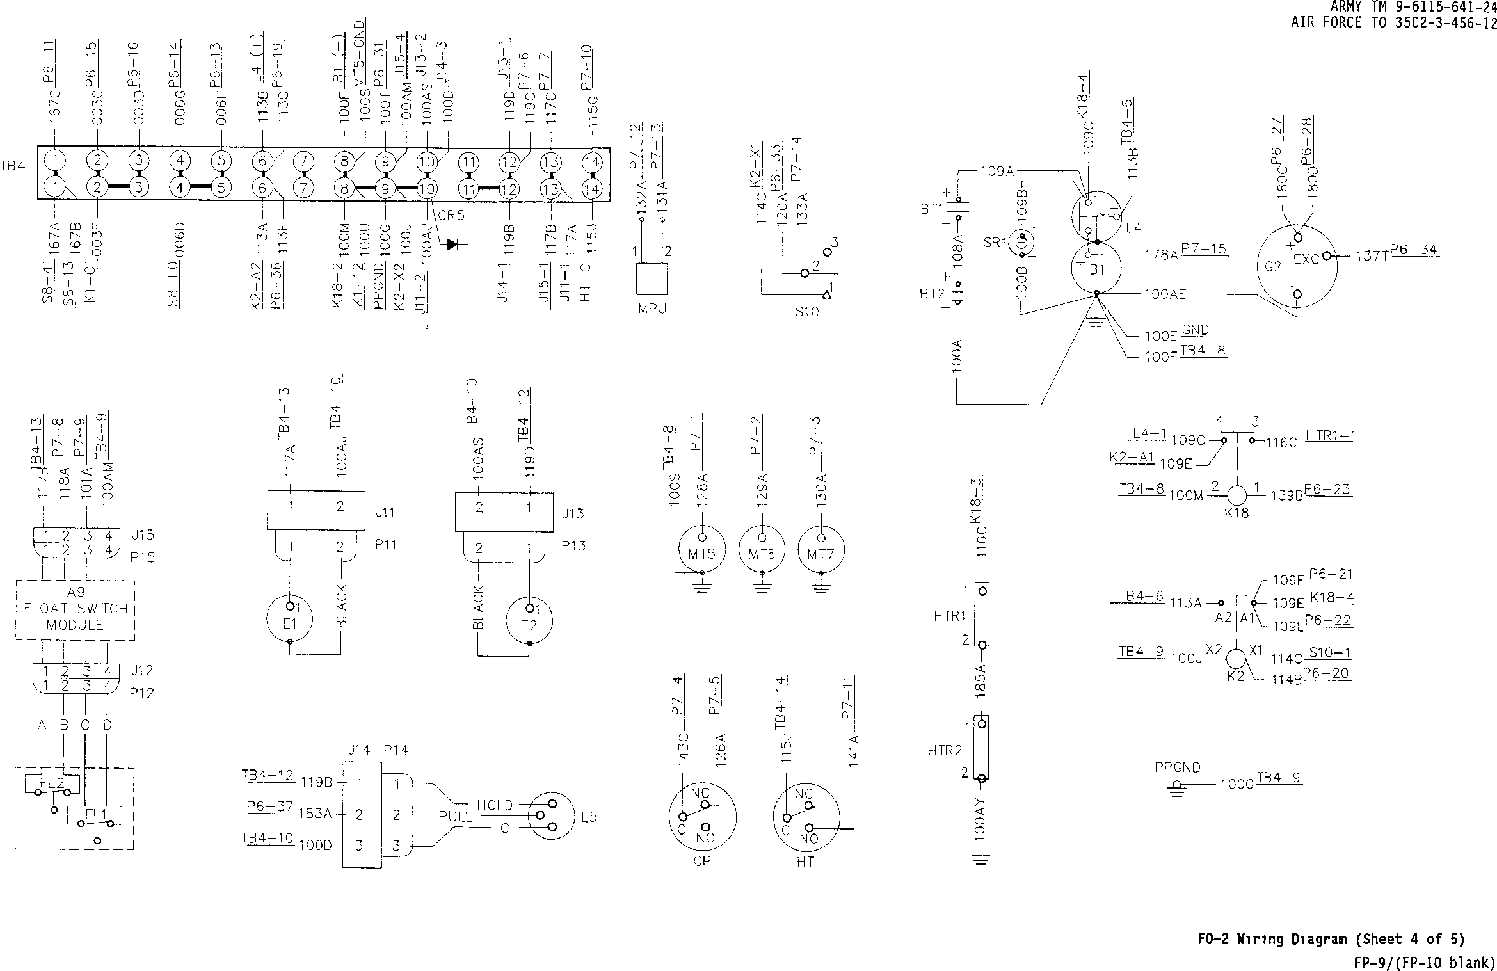 fo-2. wiring diagram (sheet 4 of 5)